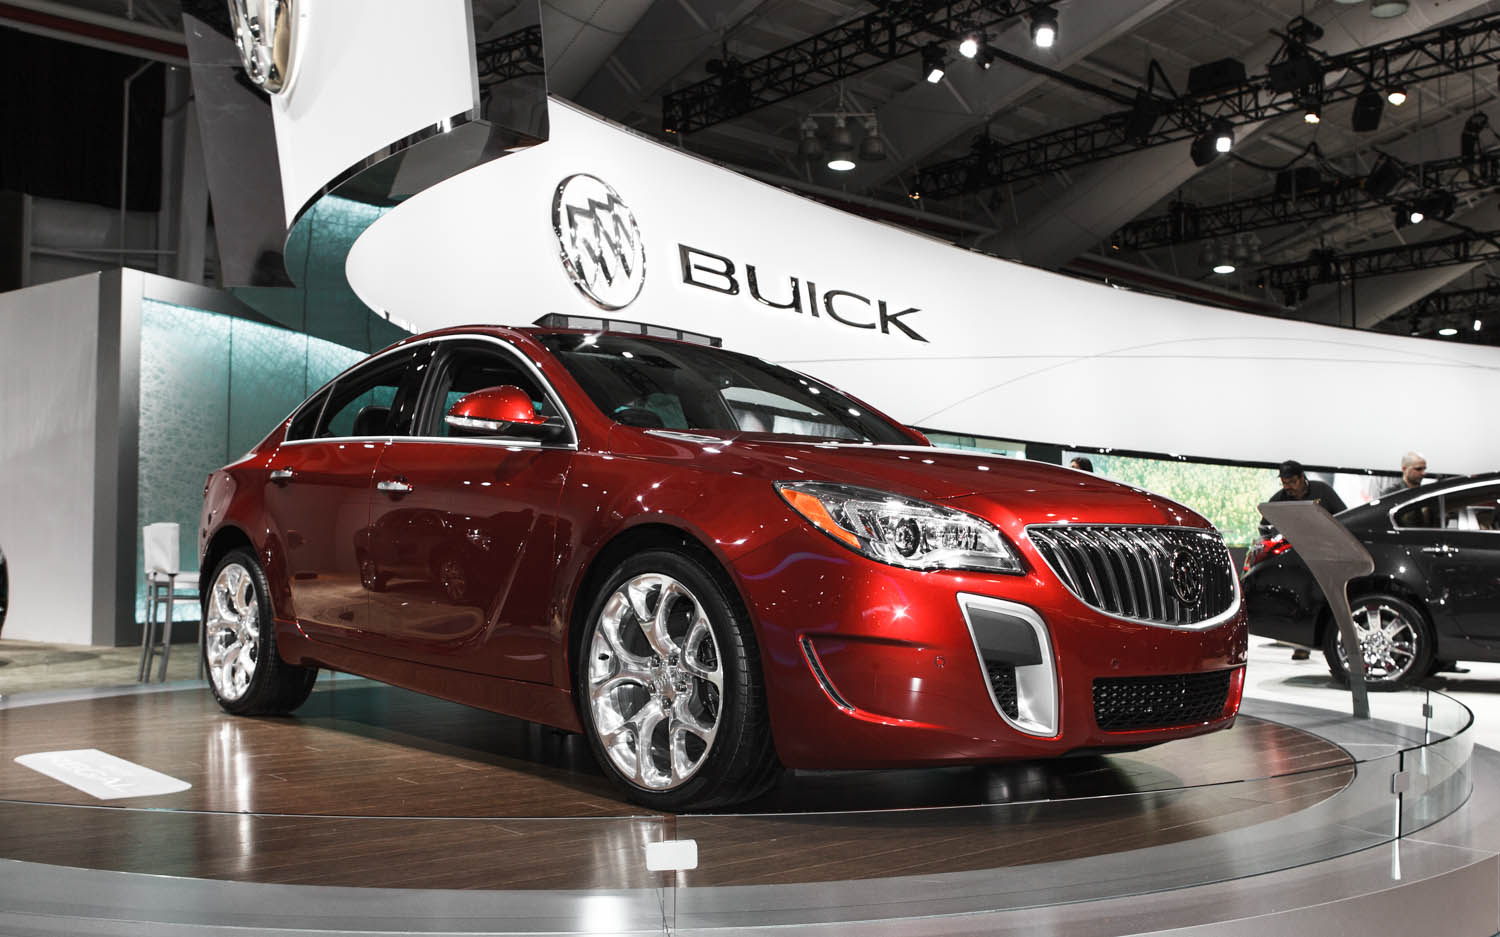 2014 Buick Regal First Look